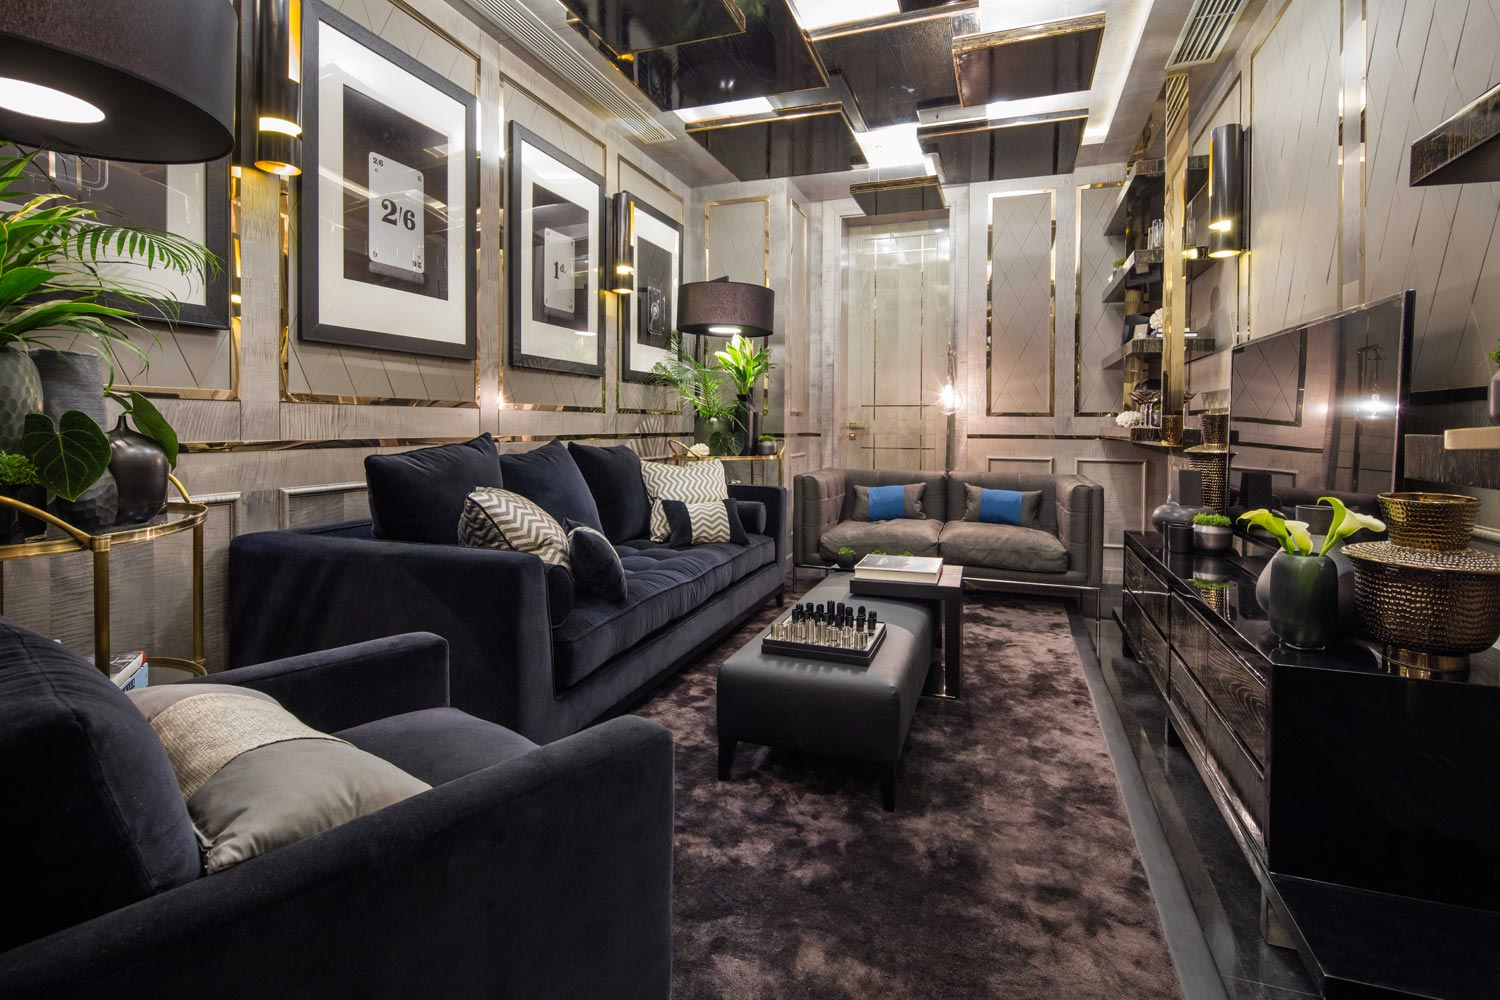 Delicieux Kelly Hoppen · London Best Interior Designers Kelly Hoppen Best Interior  Designers Best Interior Designers Based In London London